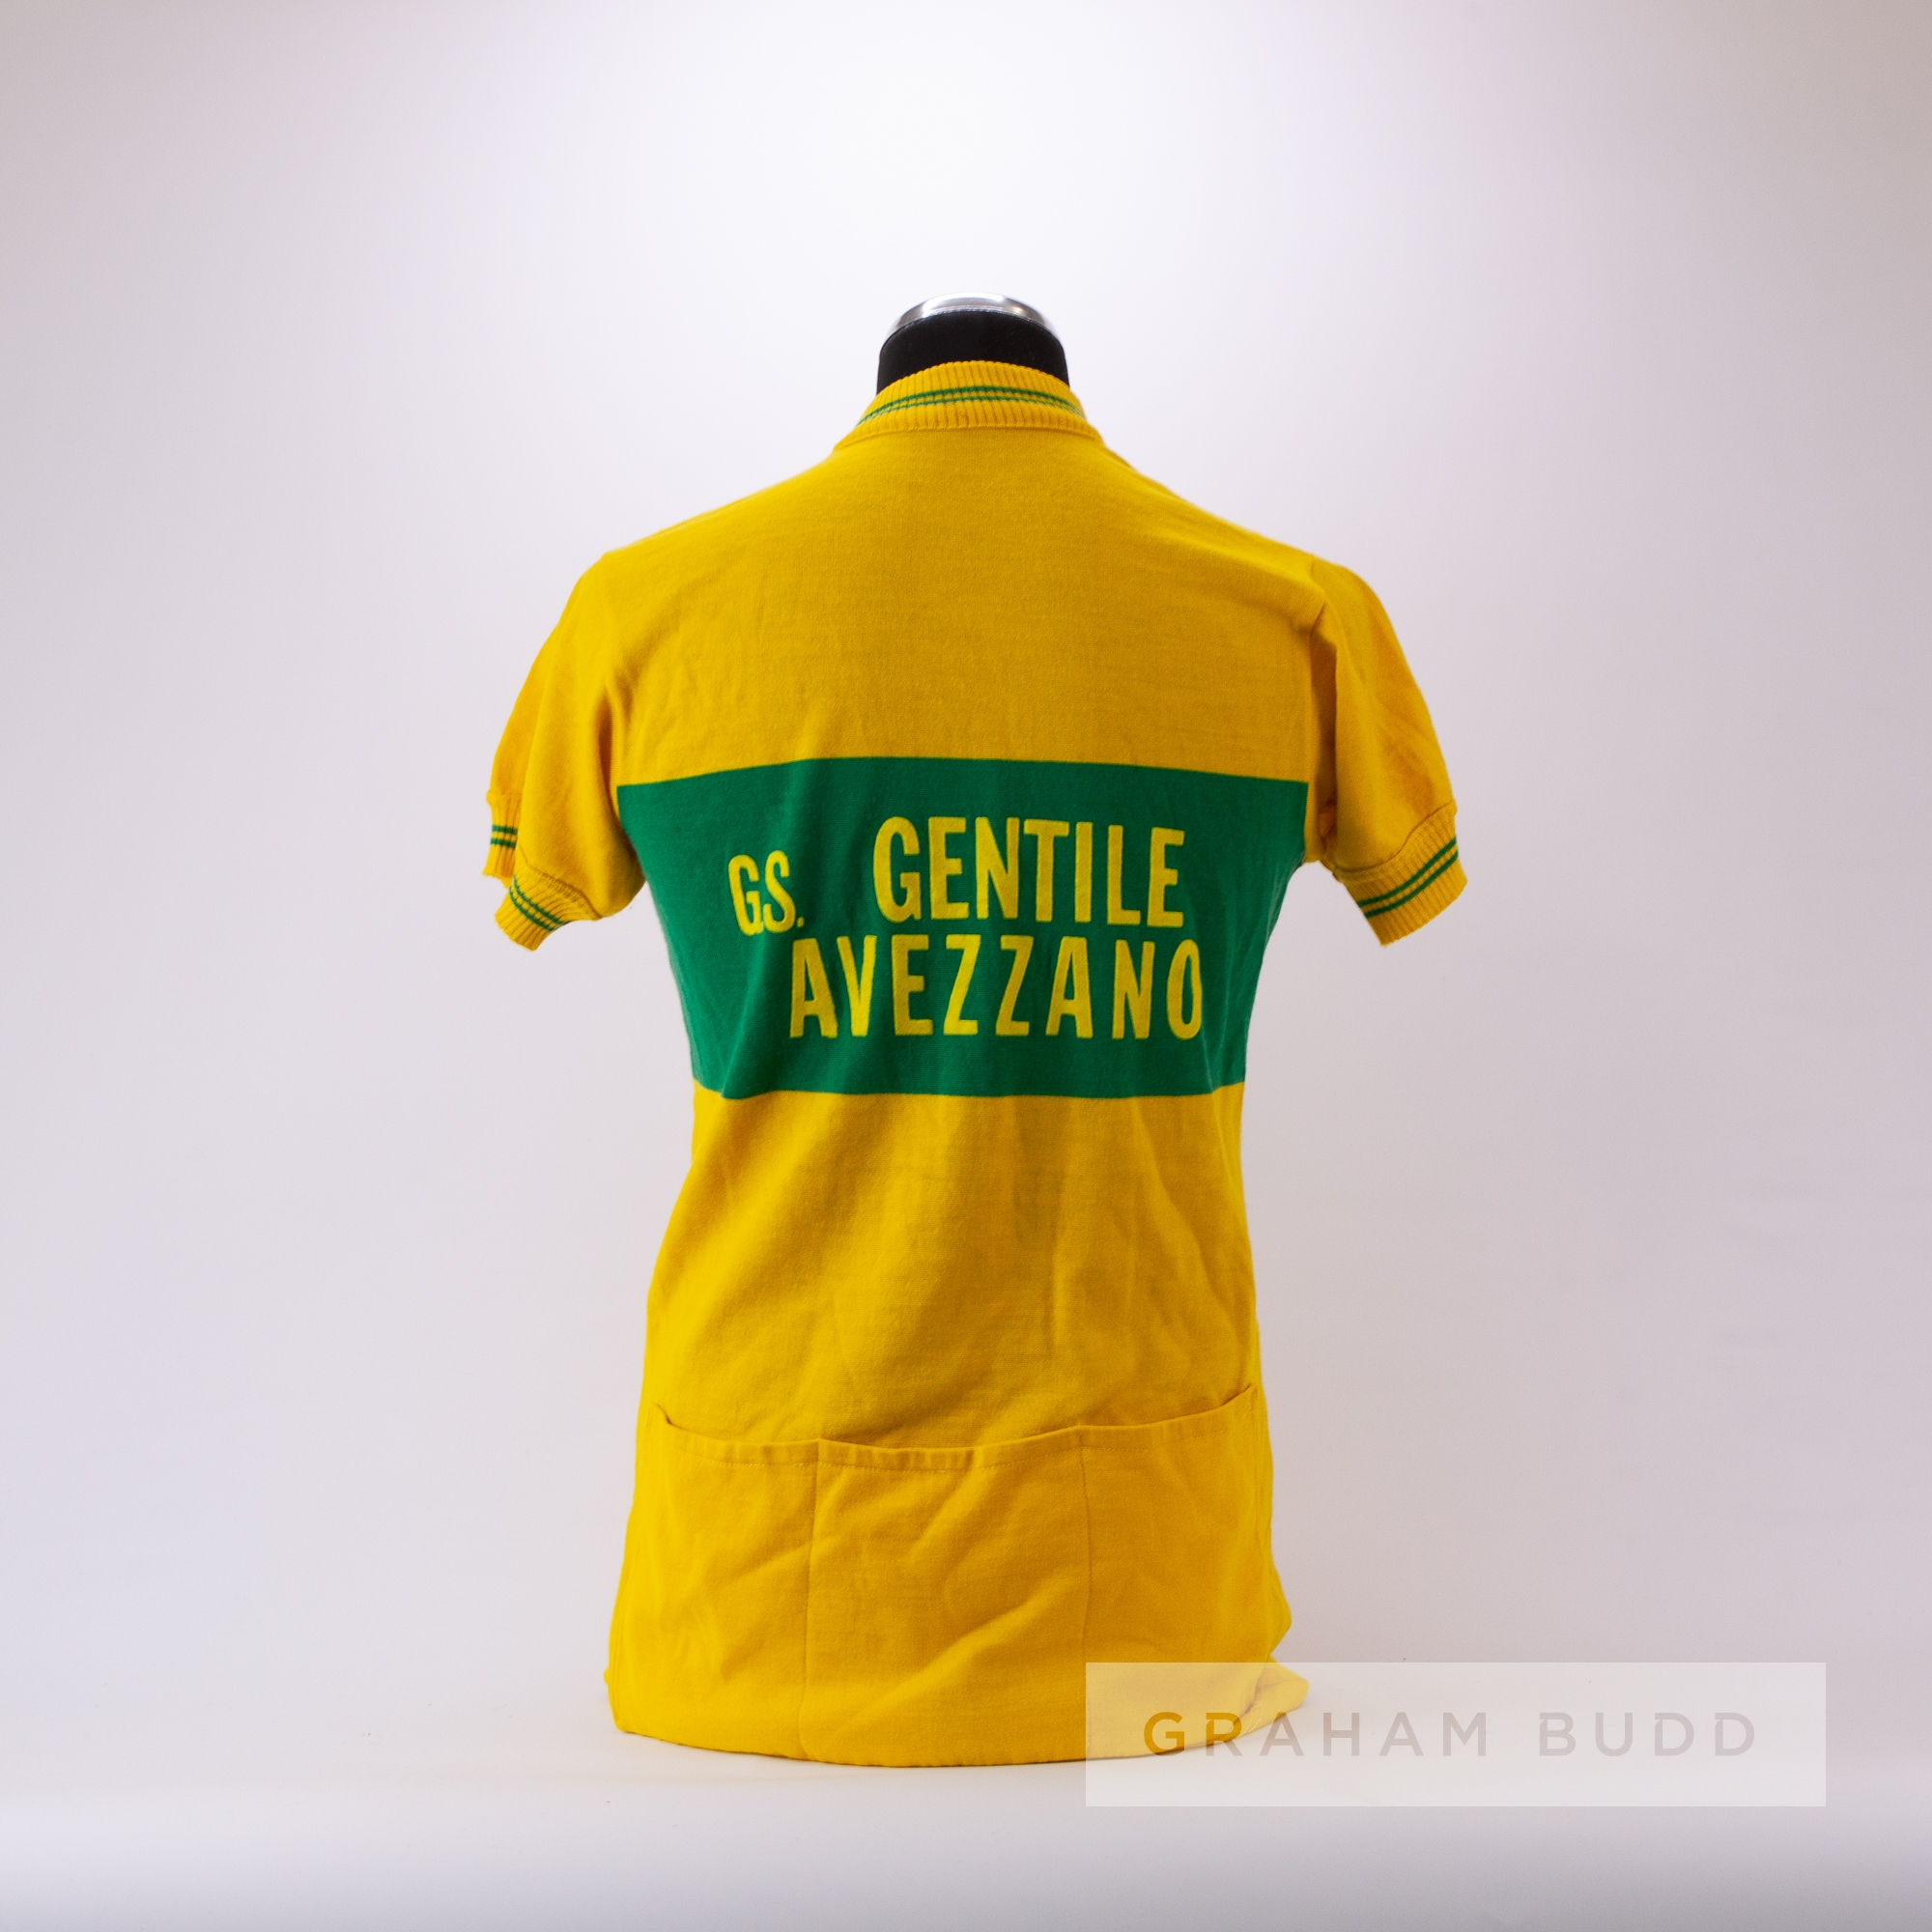 1975 yellow and green vintage Avezzano Cycling race jersey, scarce, wool and acrylic short-sleeved - Image 4 of 4